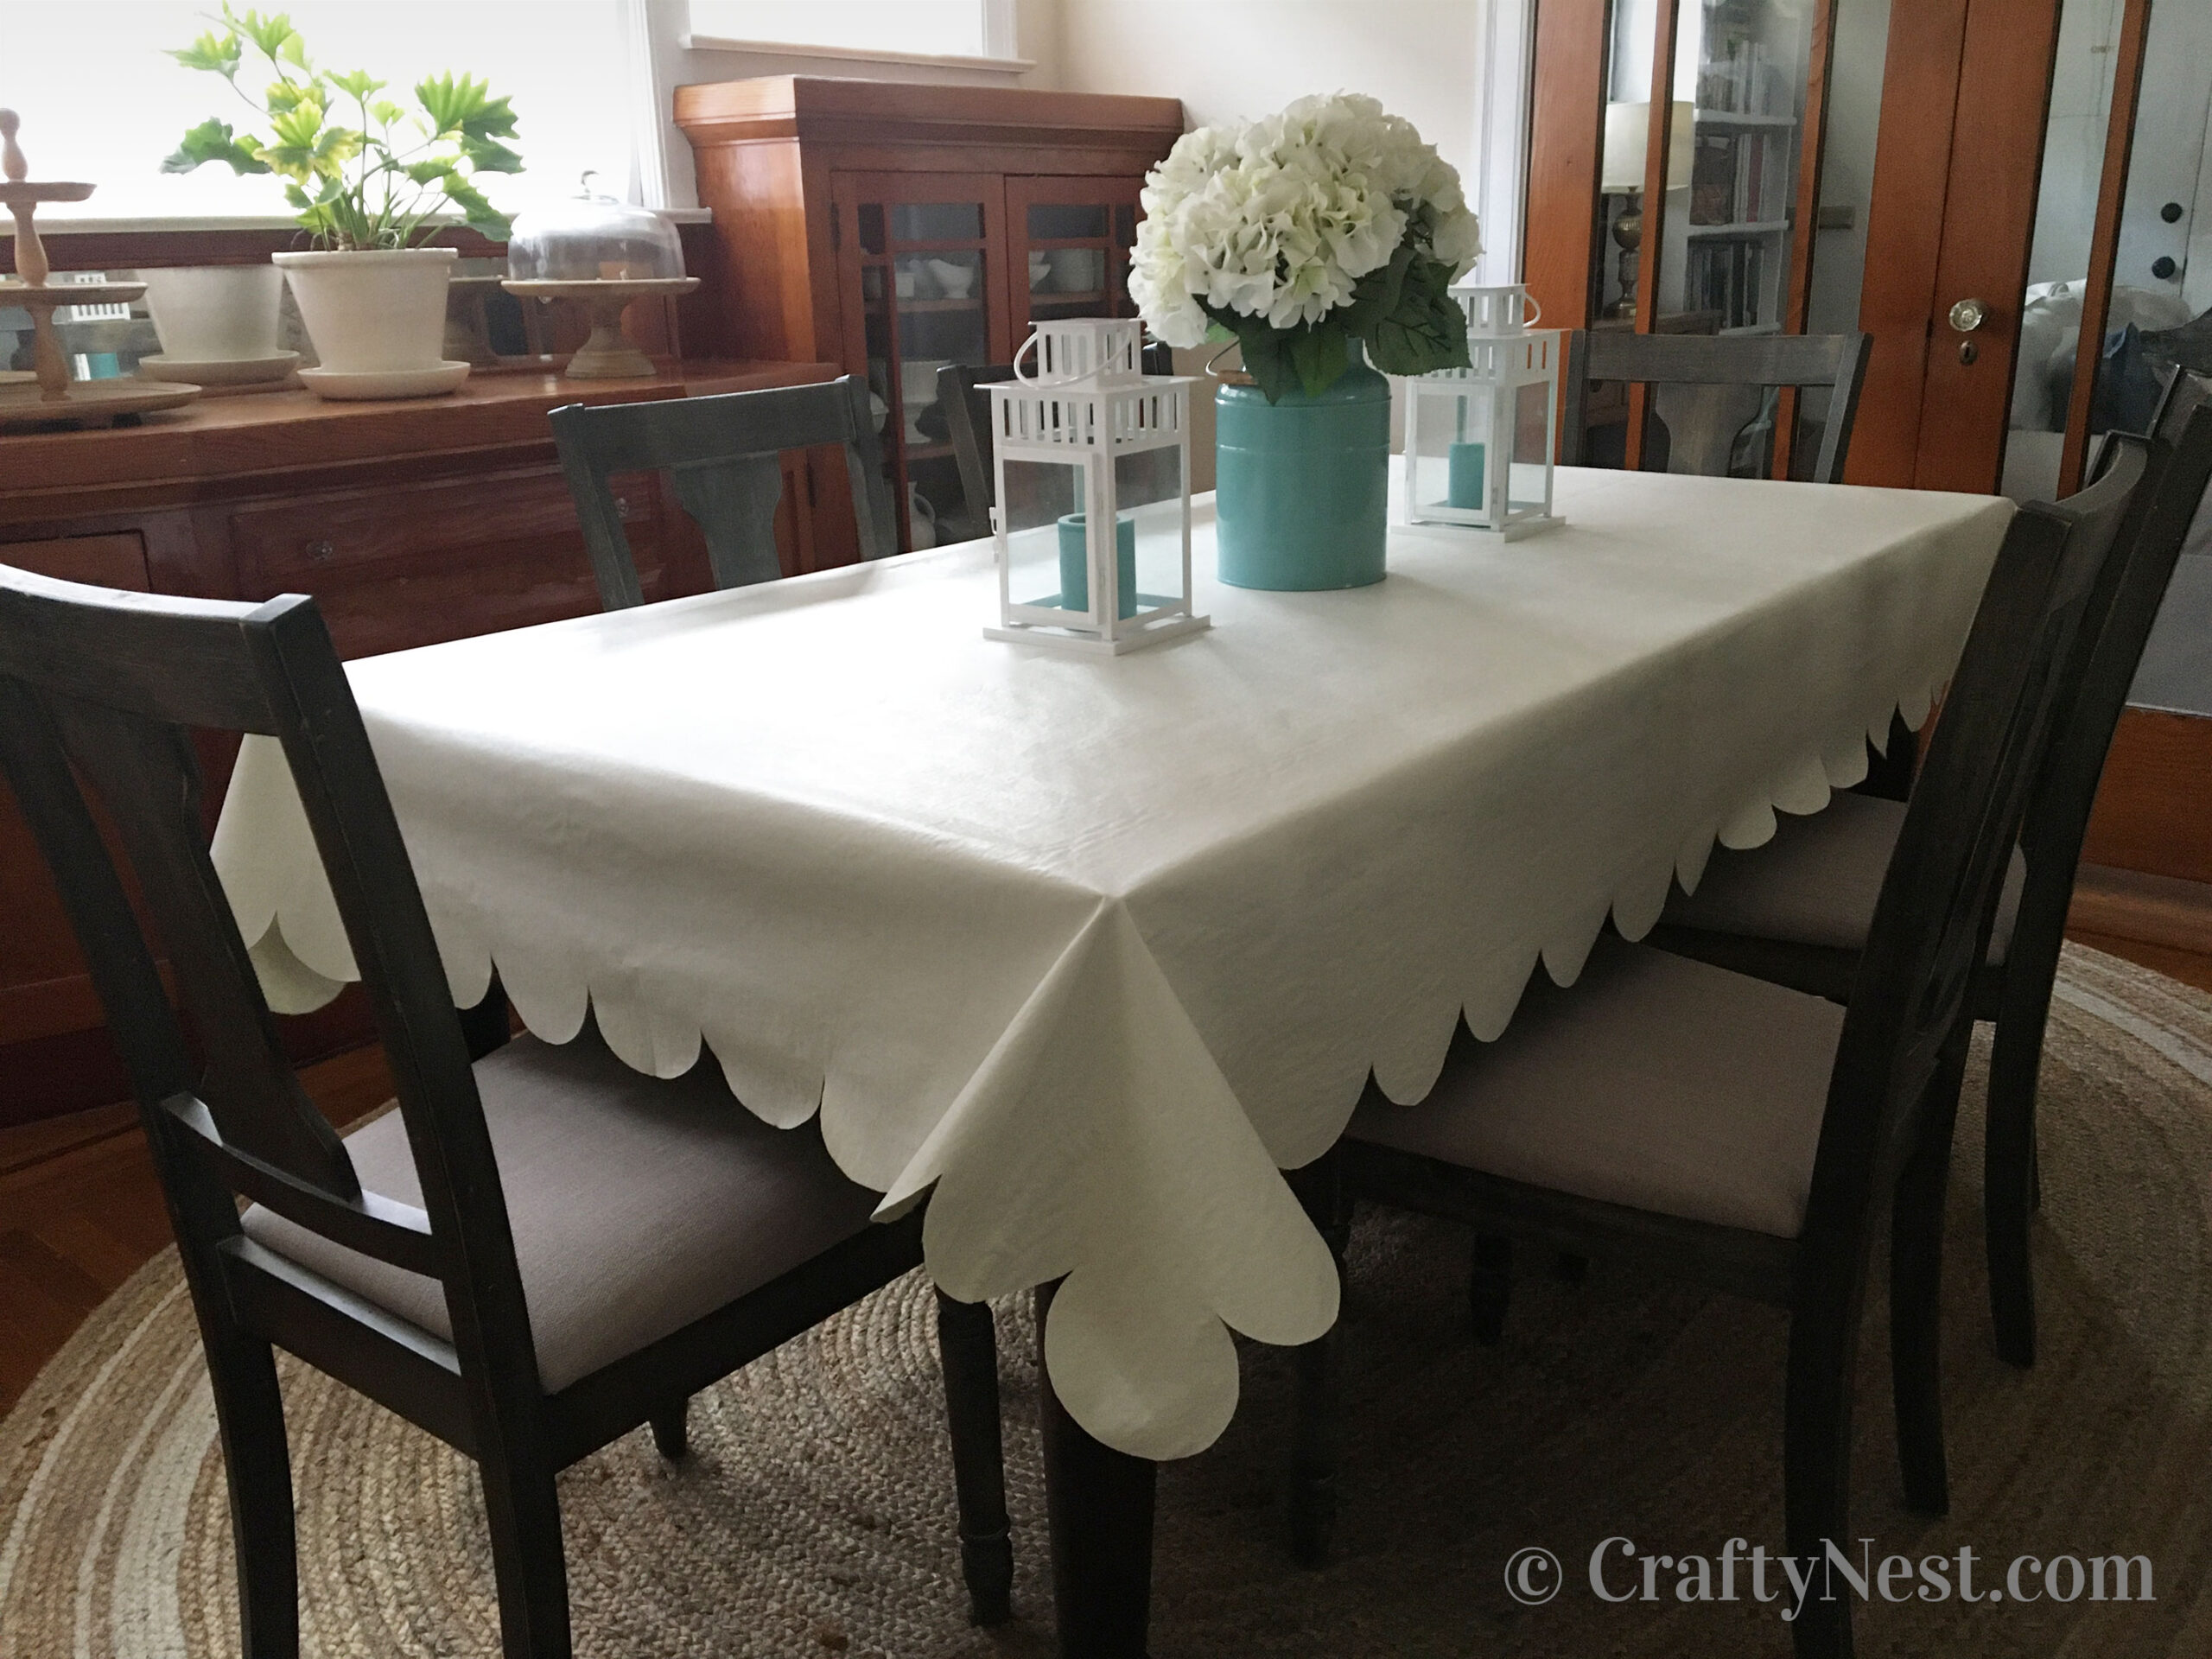 Scalloped table cloth, photo